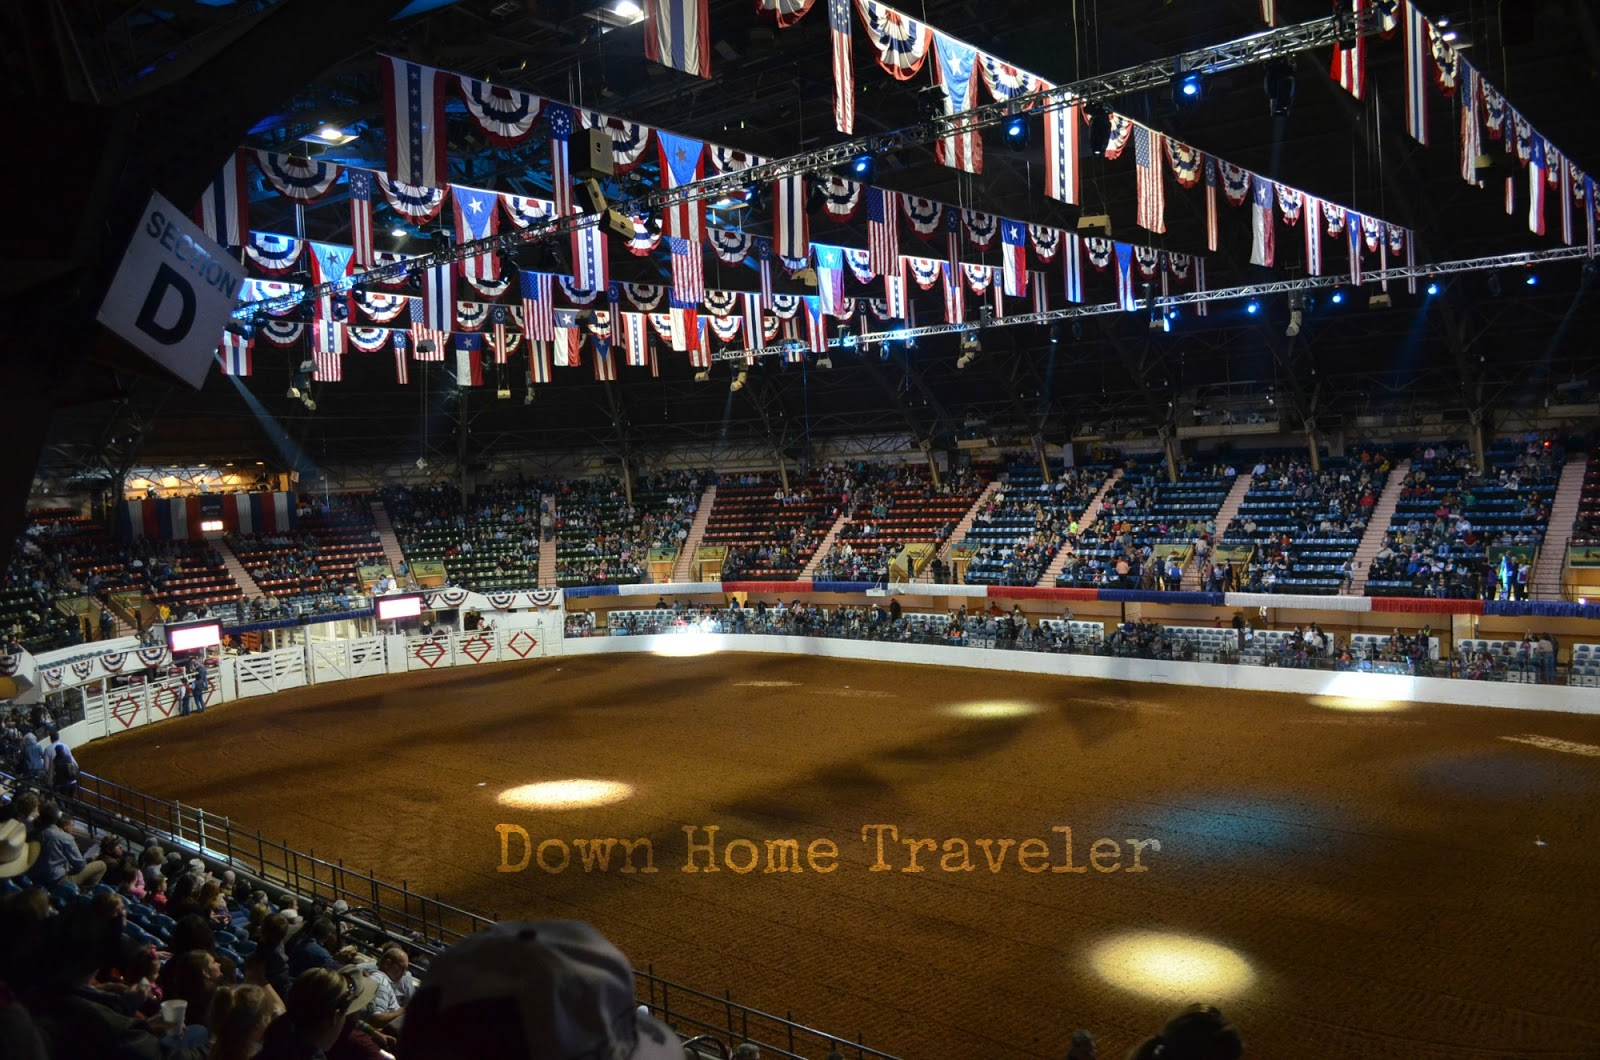 Rodeo Down Home Traveler